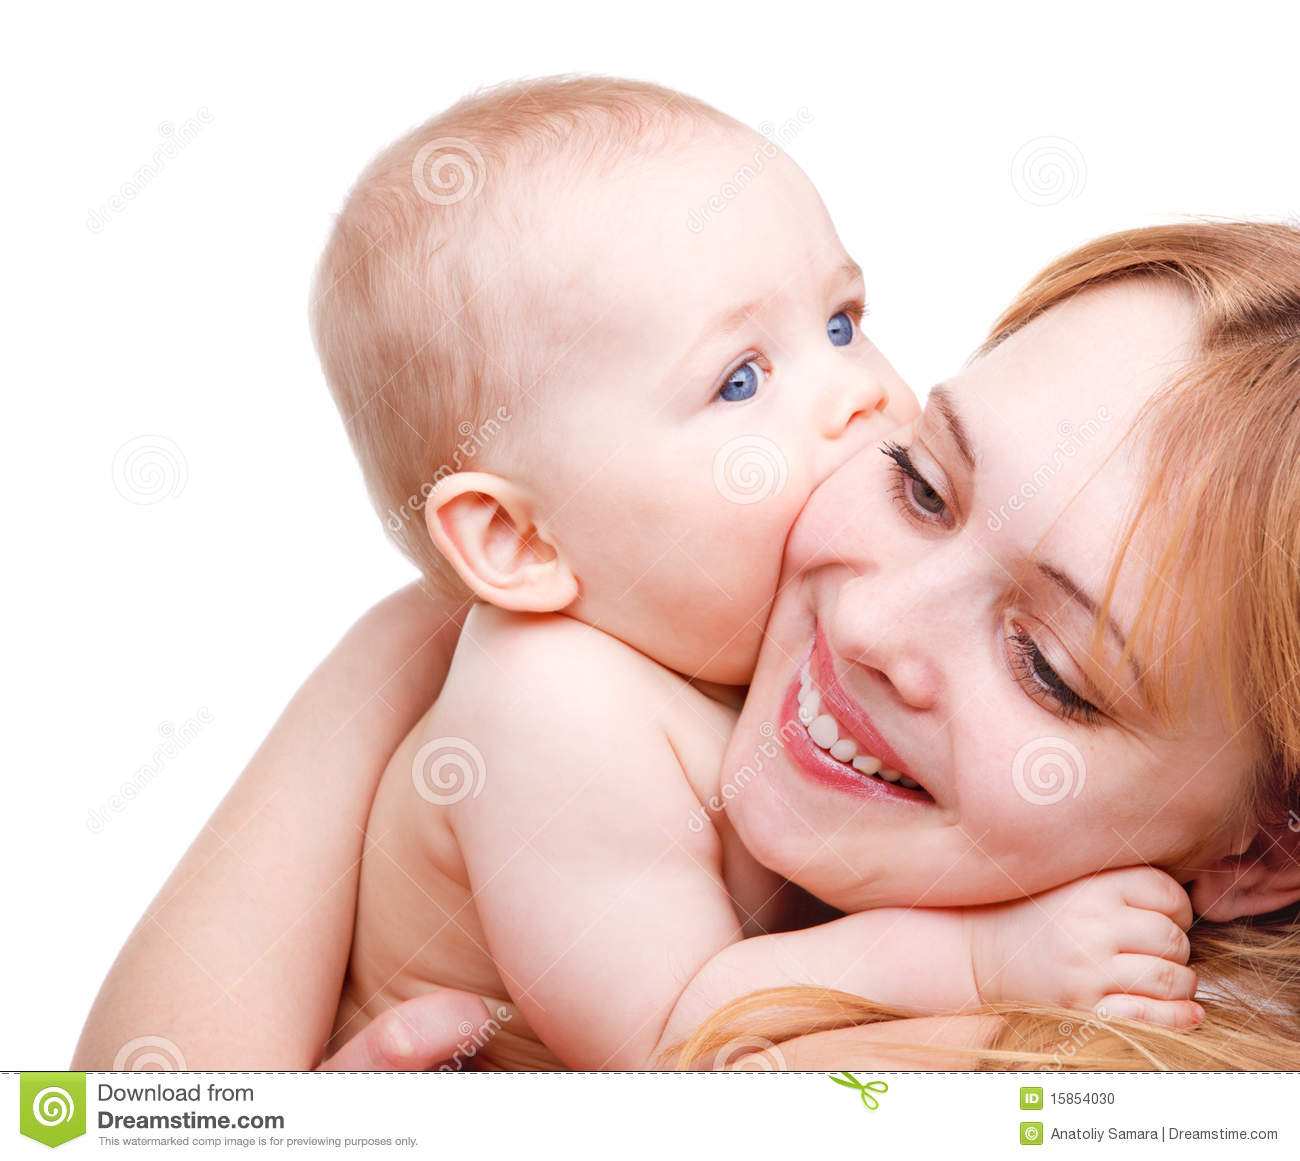 baby kissing mother stock photo - image: 15854030